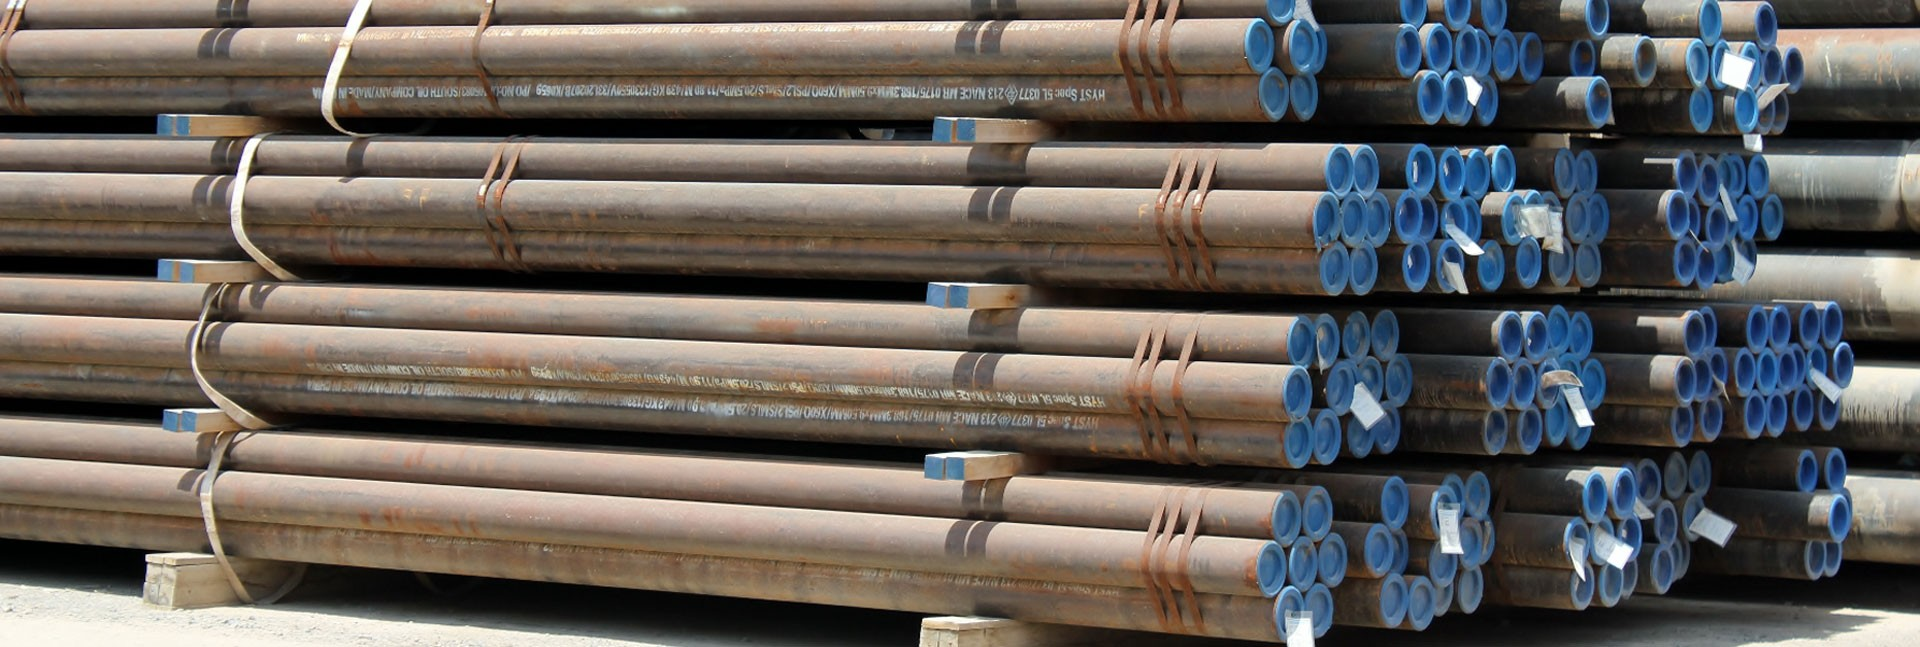 Specialist in API X42/X46/X52/X56/X60/X65/X70 Carbon Steel Line Pipe in PSL-1 & PSL-2